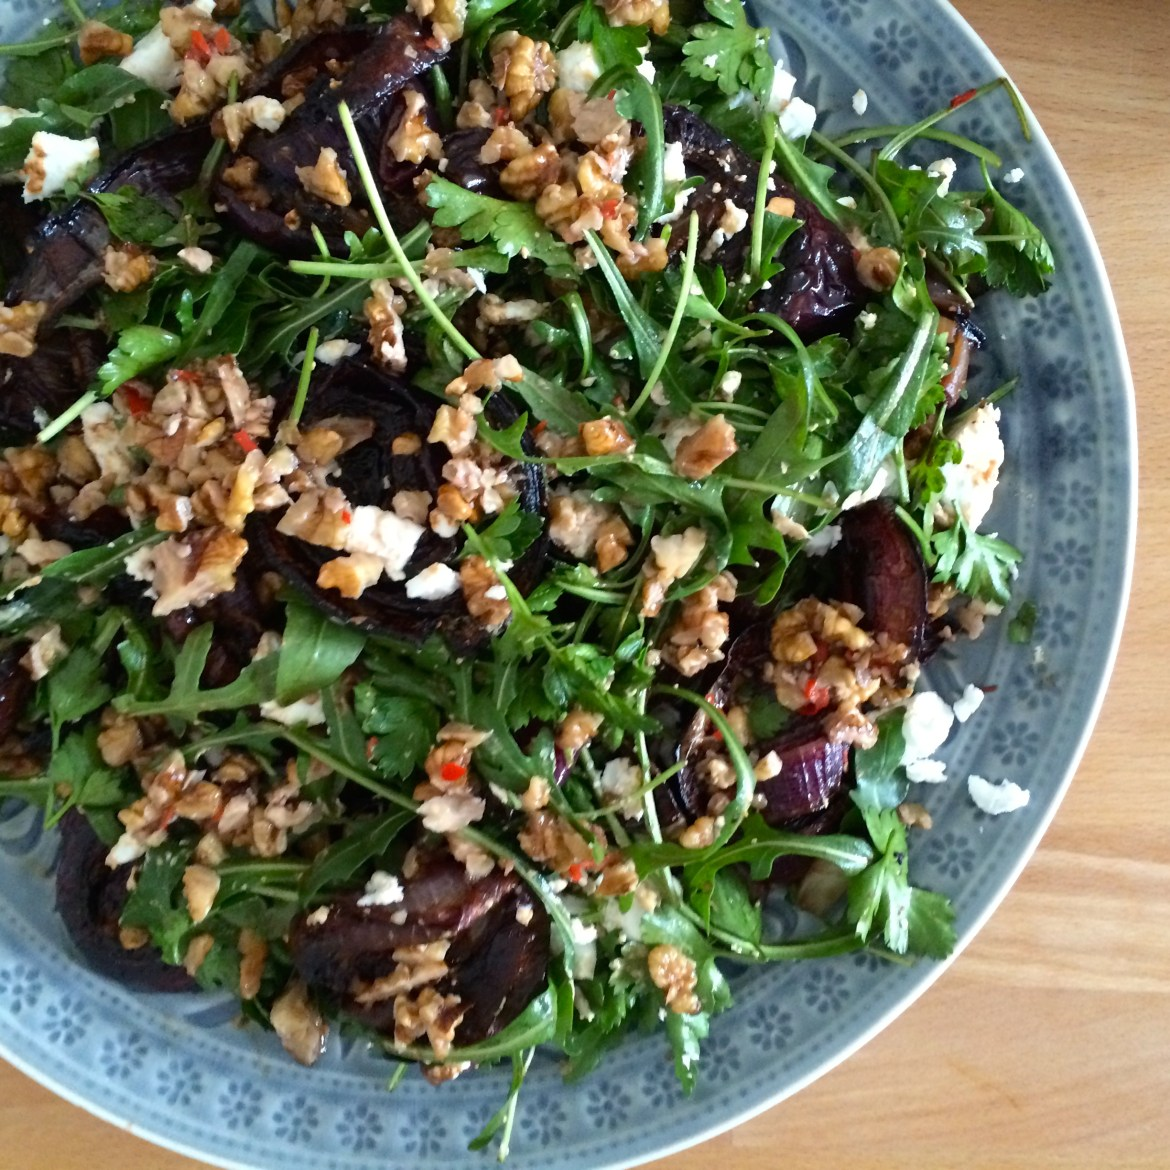 Ottolenghi's baked red onion, salad with walnut salsa